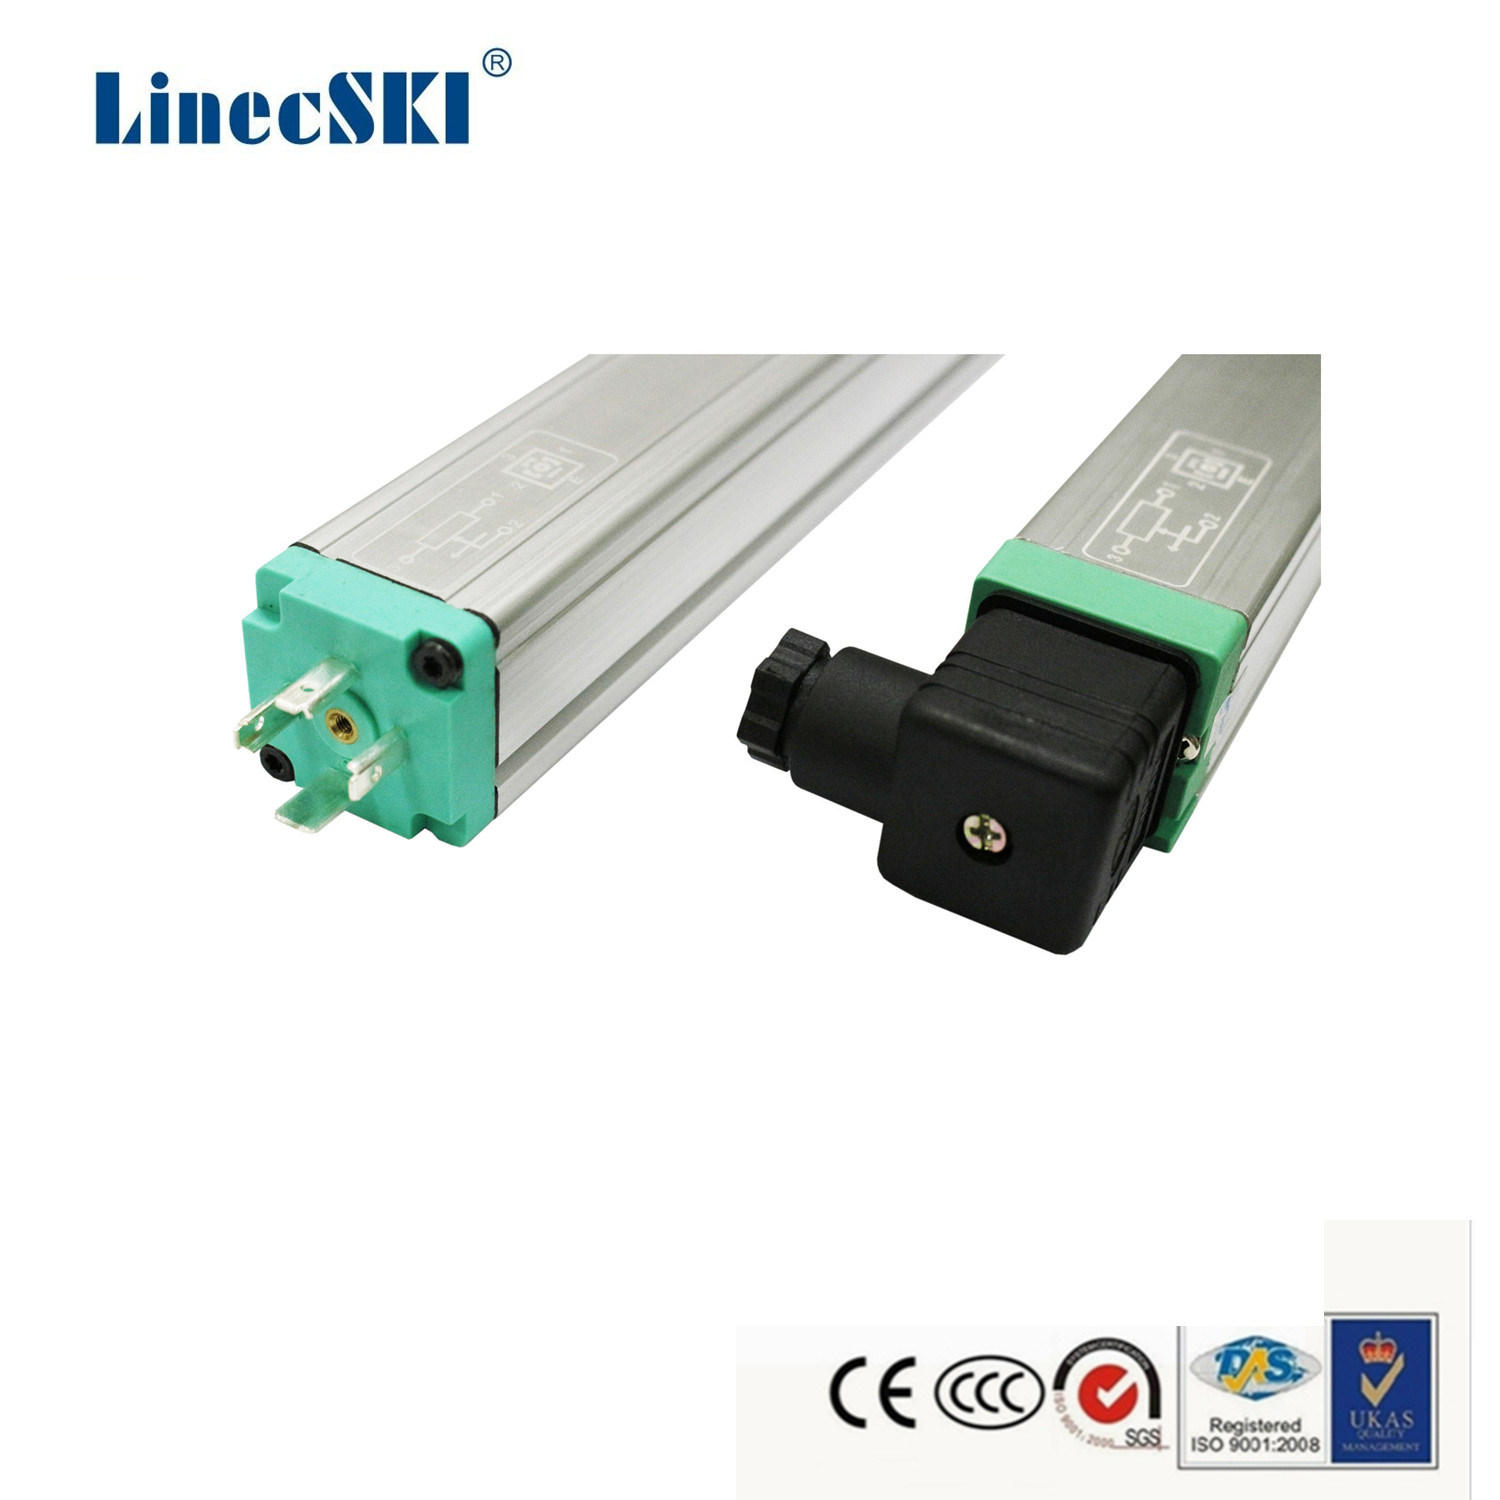 China Factory Supply Magnetic Position Sensor Potentiometer for